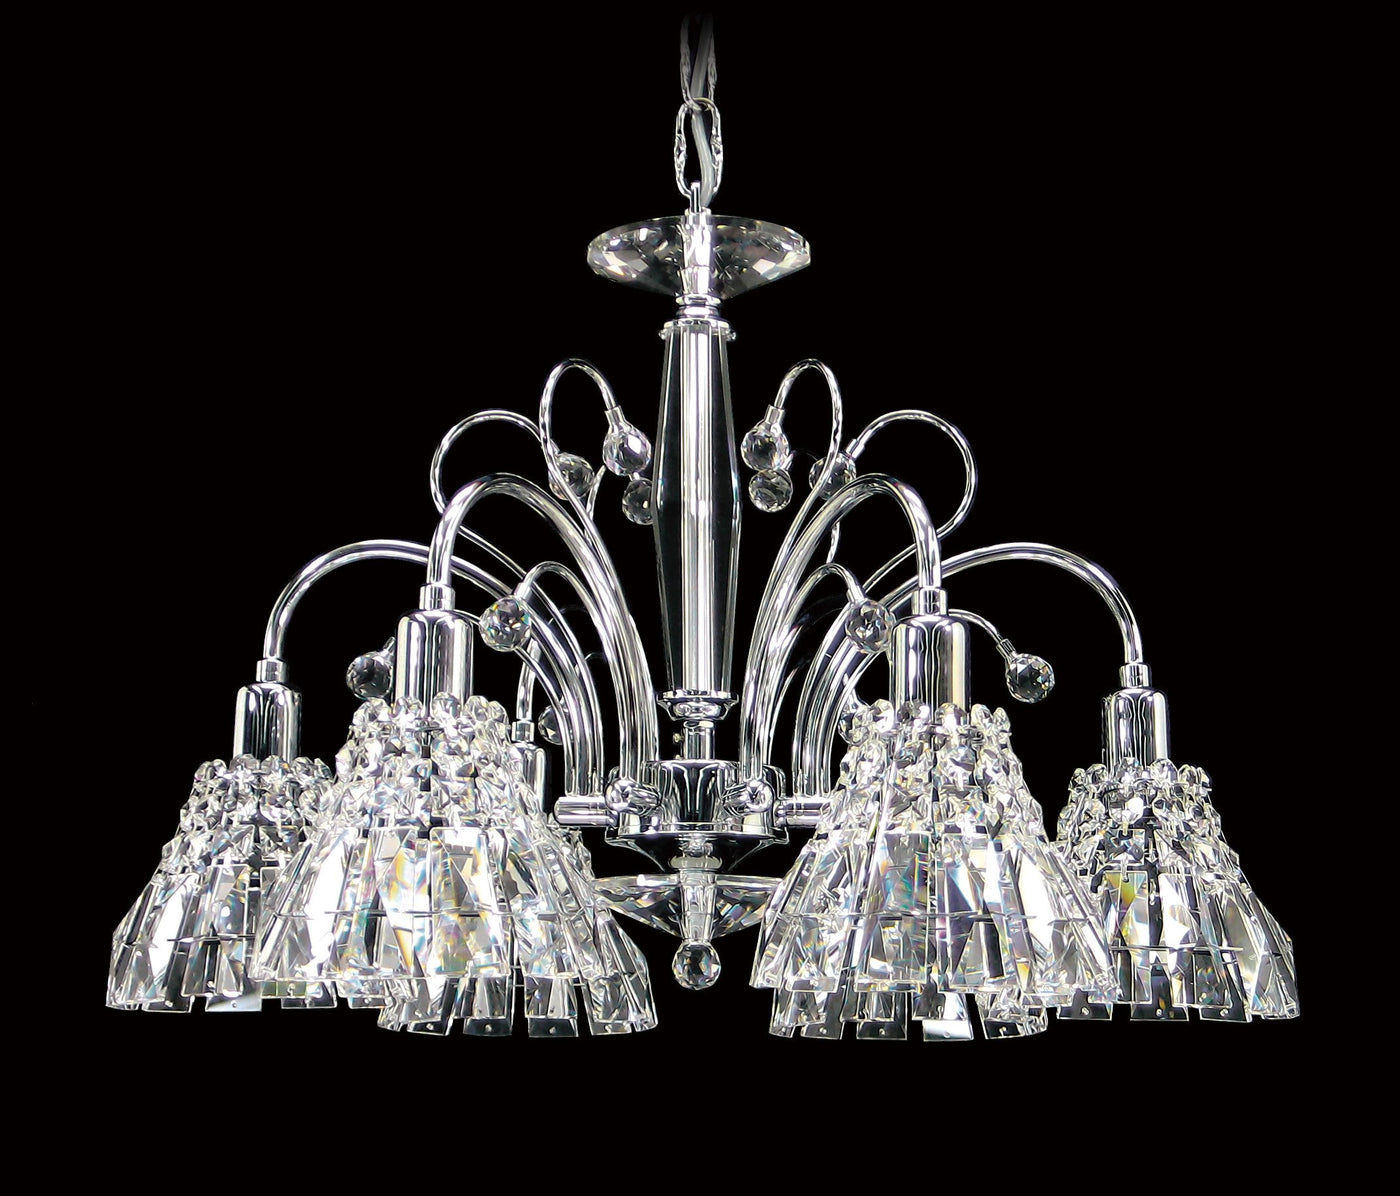 031 crystal pendant light 20in 6 light asfour crystal chandelier 031 crystal pendant light 20in 6 light asfour crystal chandelier 031 b 20 6l 1143 aloadofball Choice Image